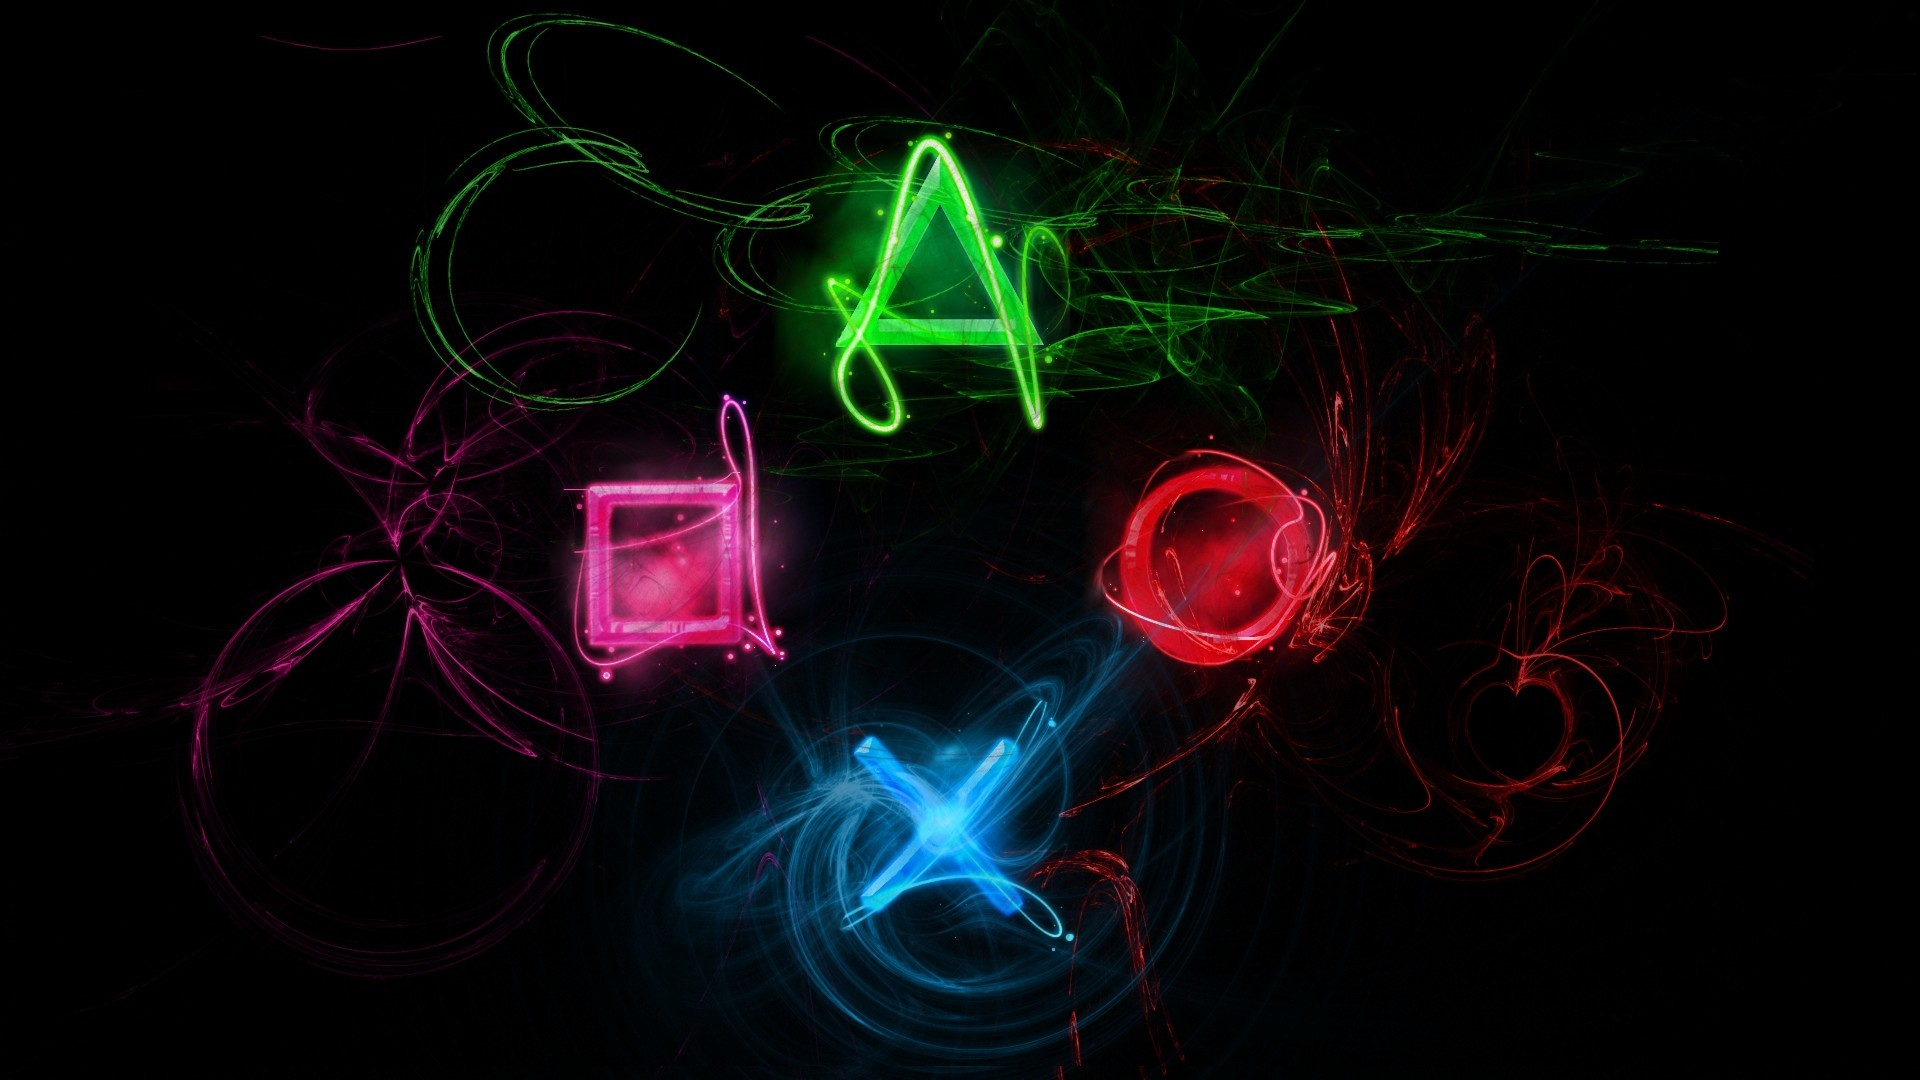 Free Download 80 Ps4 Background Wallpapers On Wallpaperplay